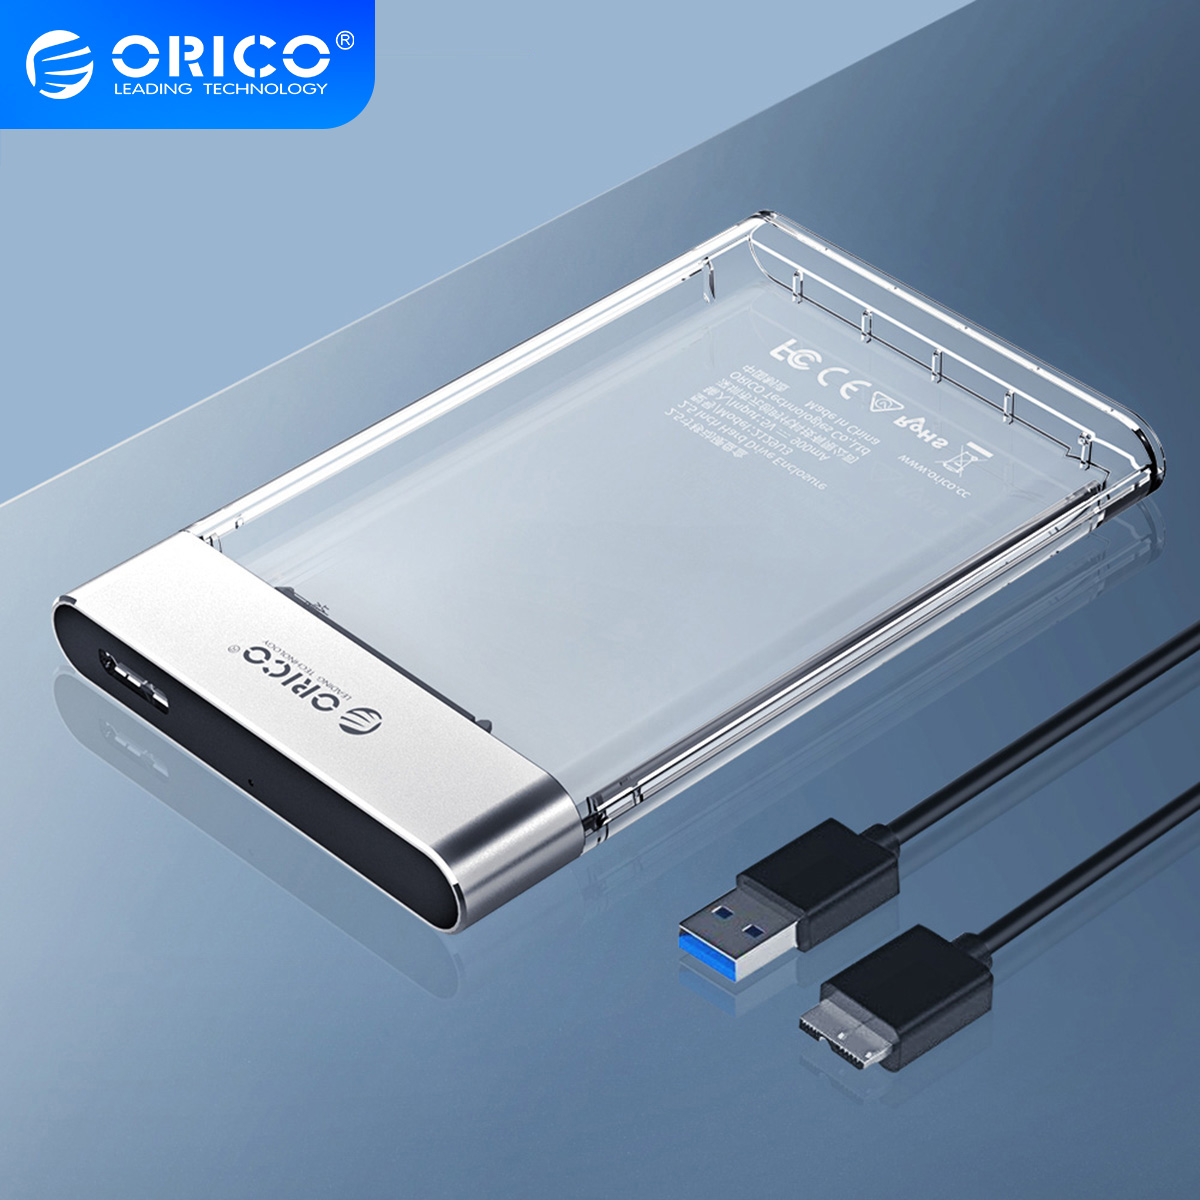 ORICO HDD Case New 2 5 inch Transparent Add Metal SATA to USB 3 0 Hard Disk Case Tool Free 6Gbps Support 4TB UASP Case Hd Box